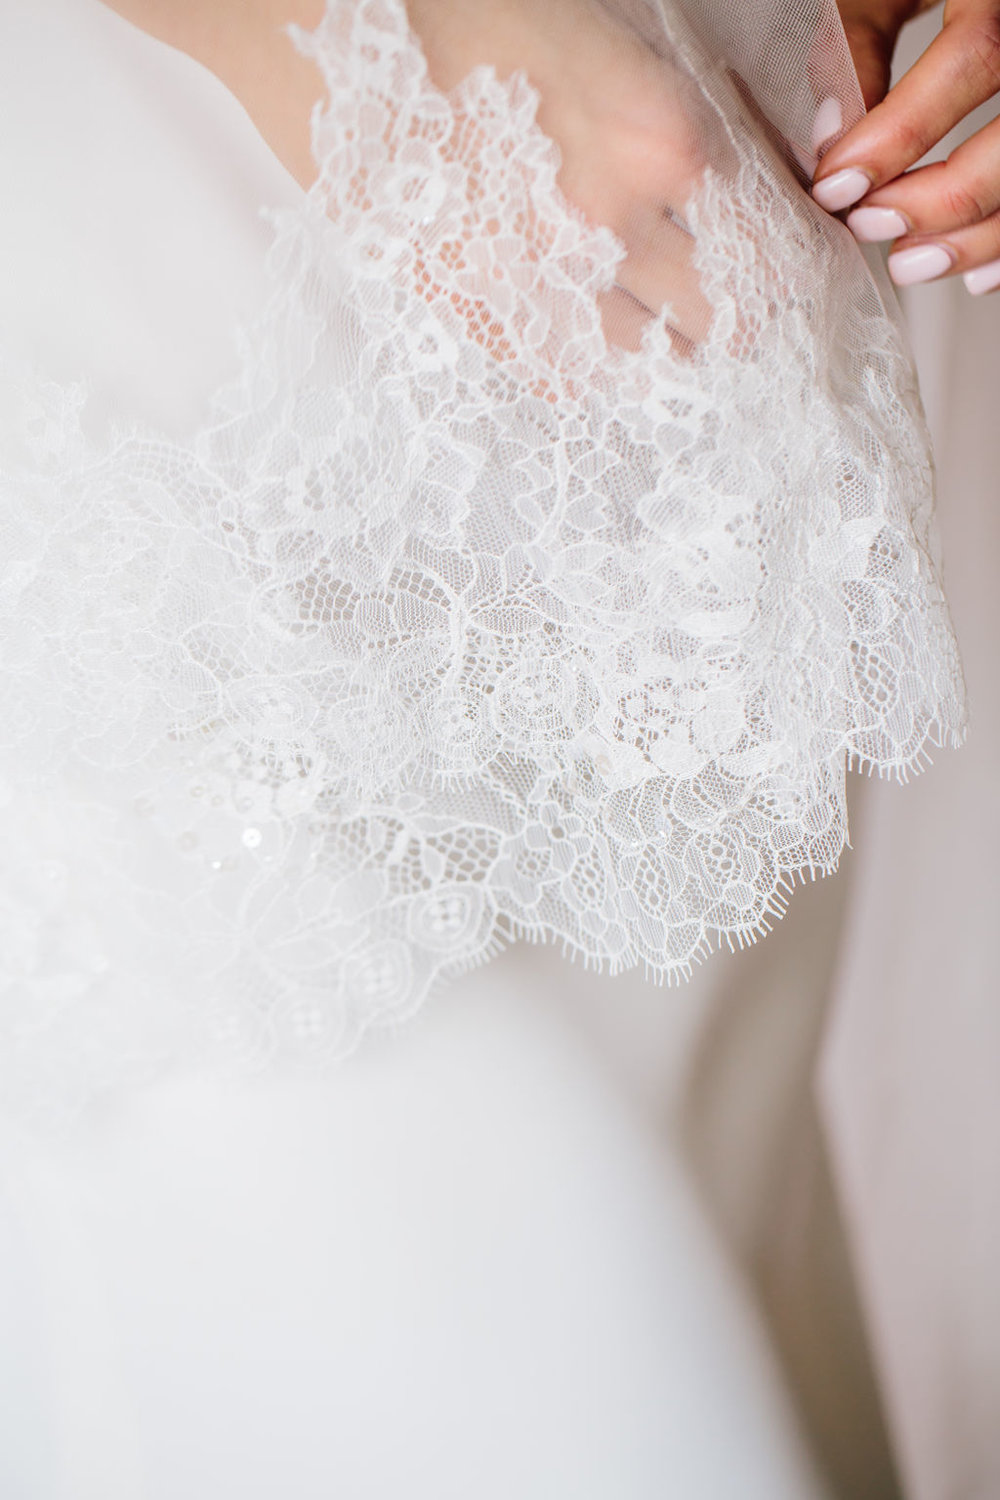 Amelia Veil   Details: Circle cut veil with Chantilly lace detailing all the way around  Cathedral only $598